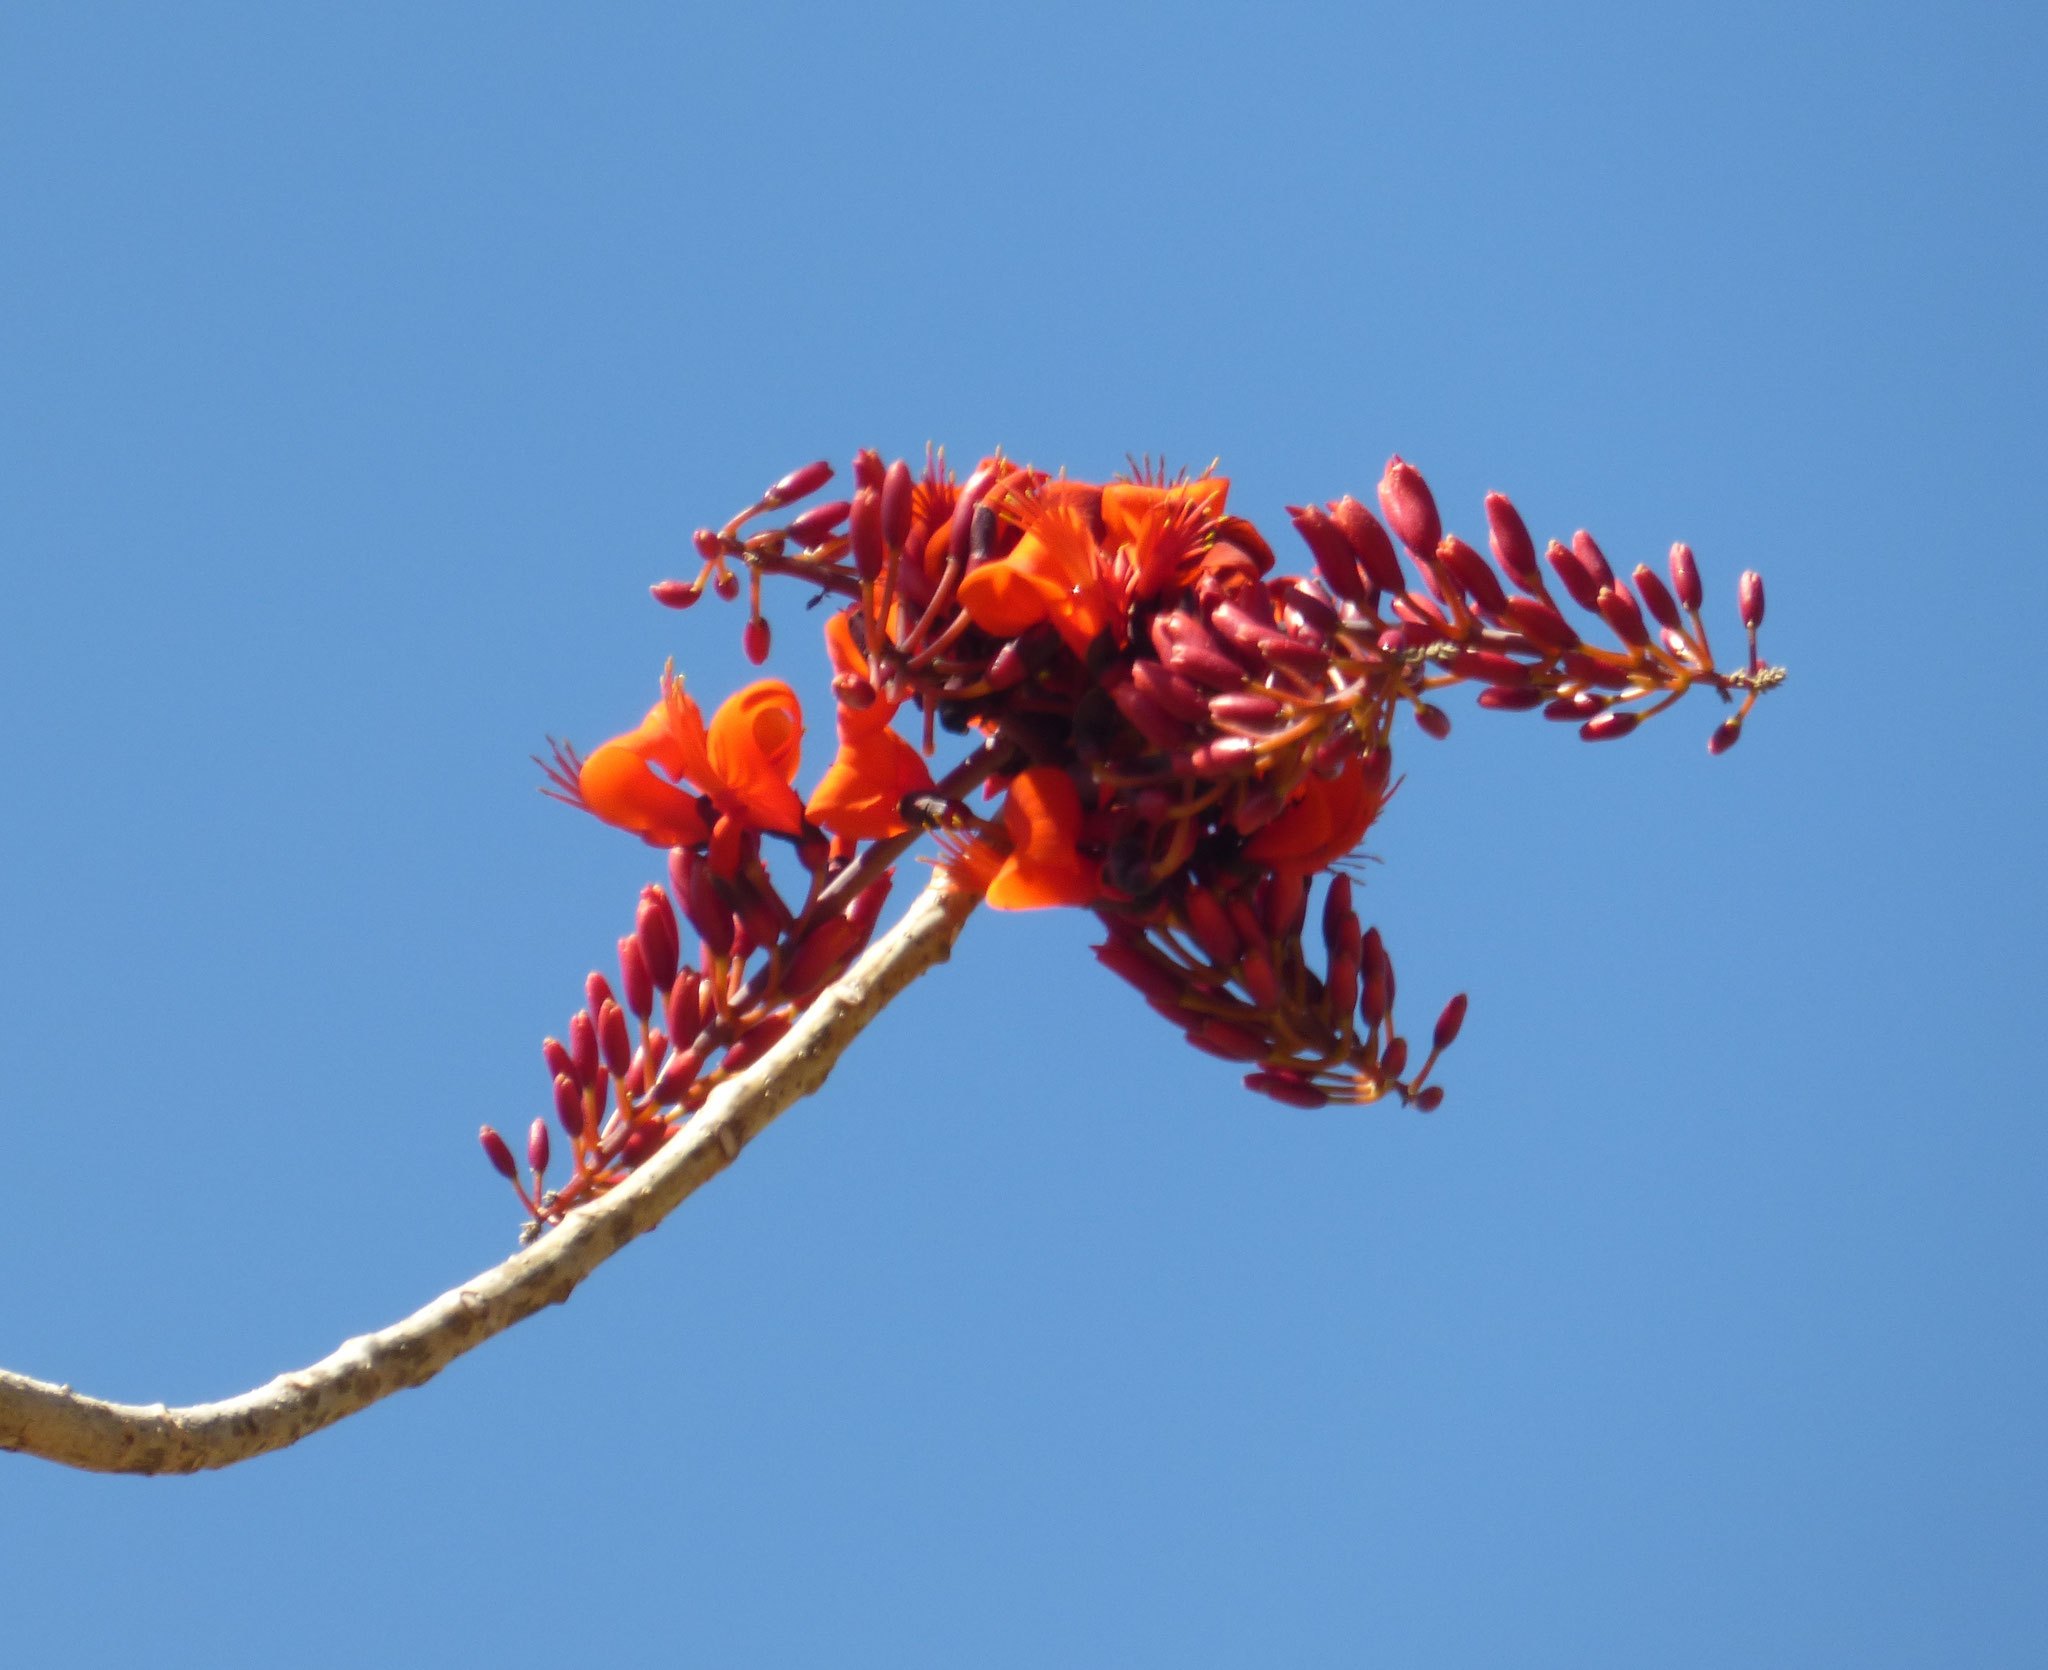 Flowering Bats-Wing Coral tree